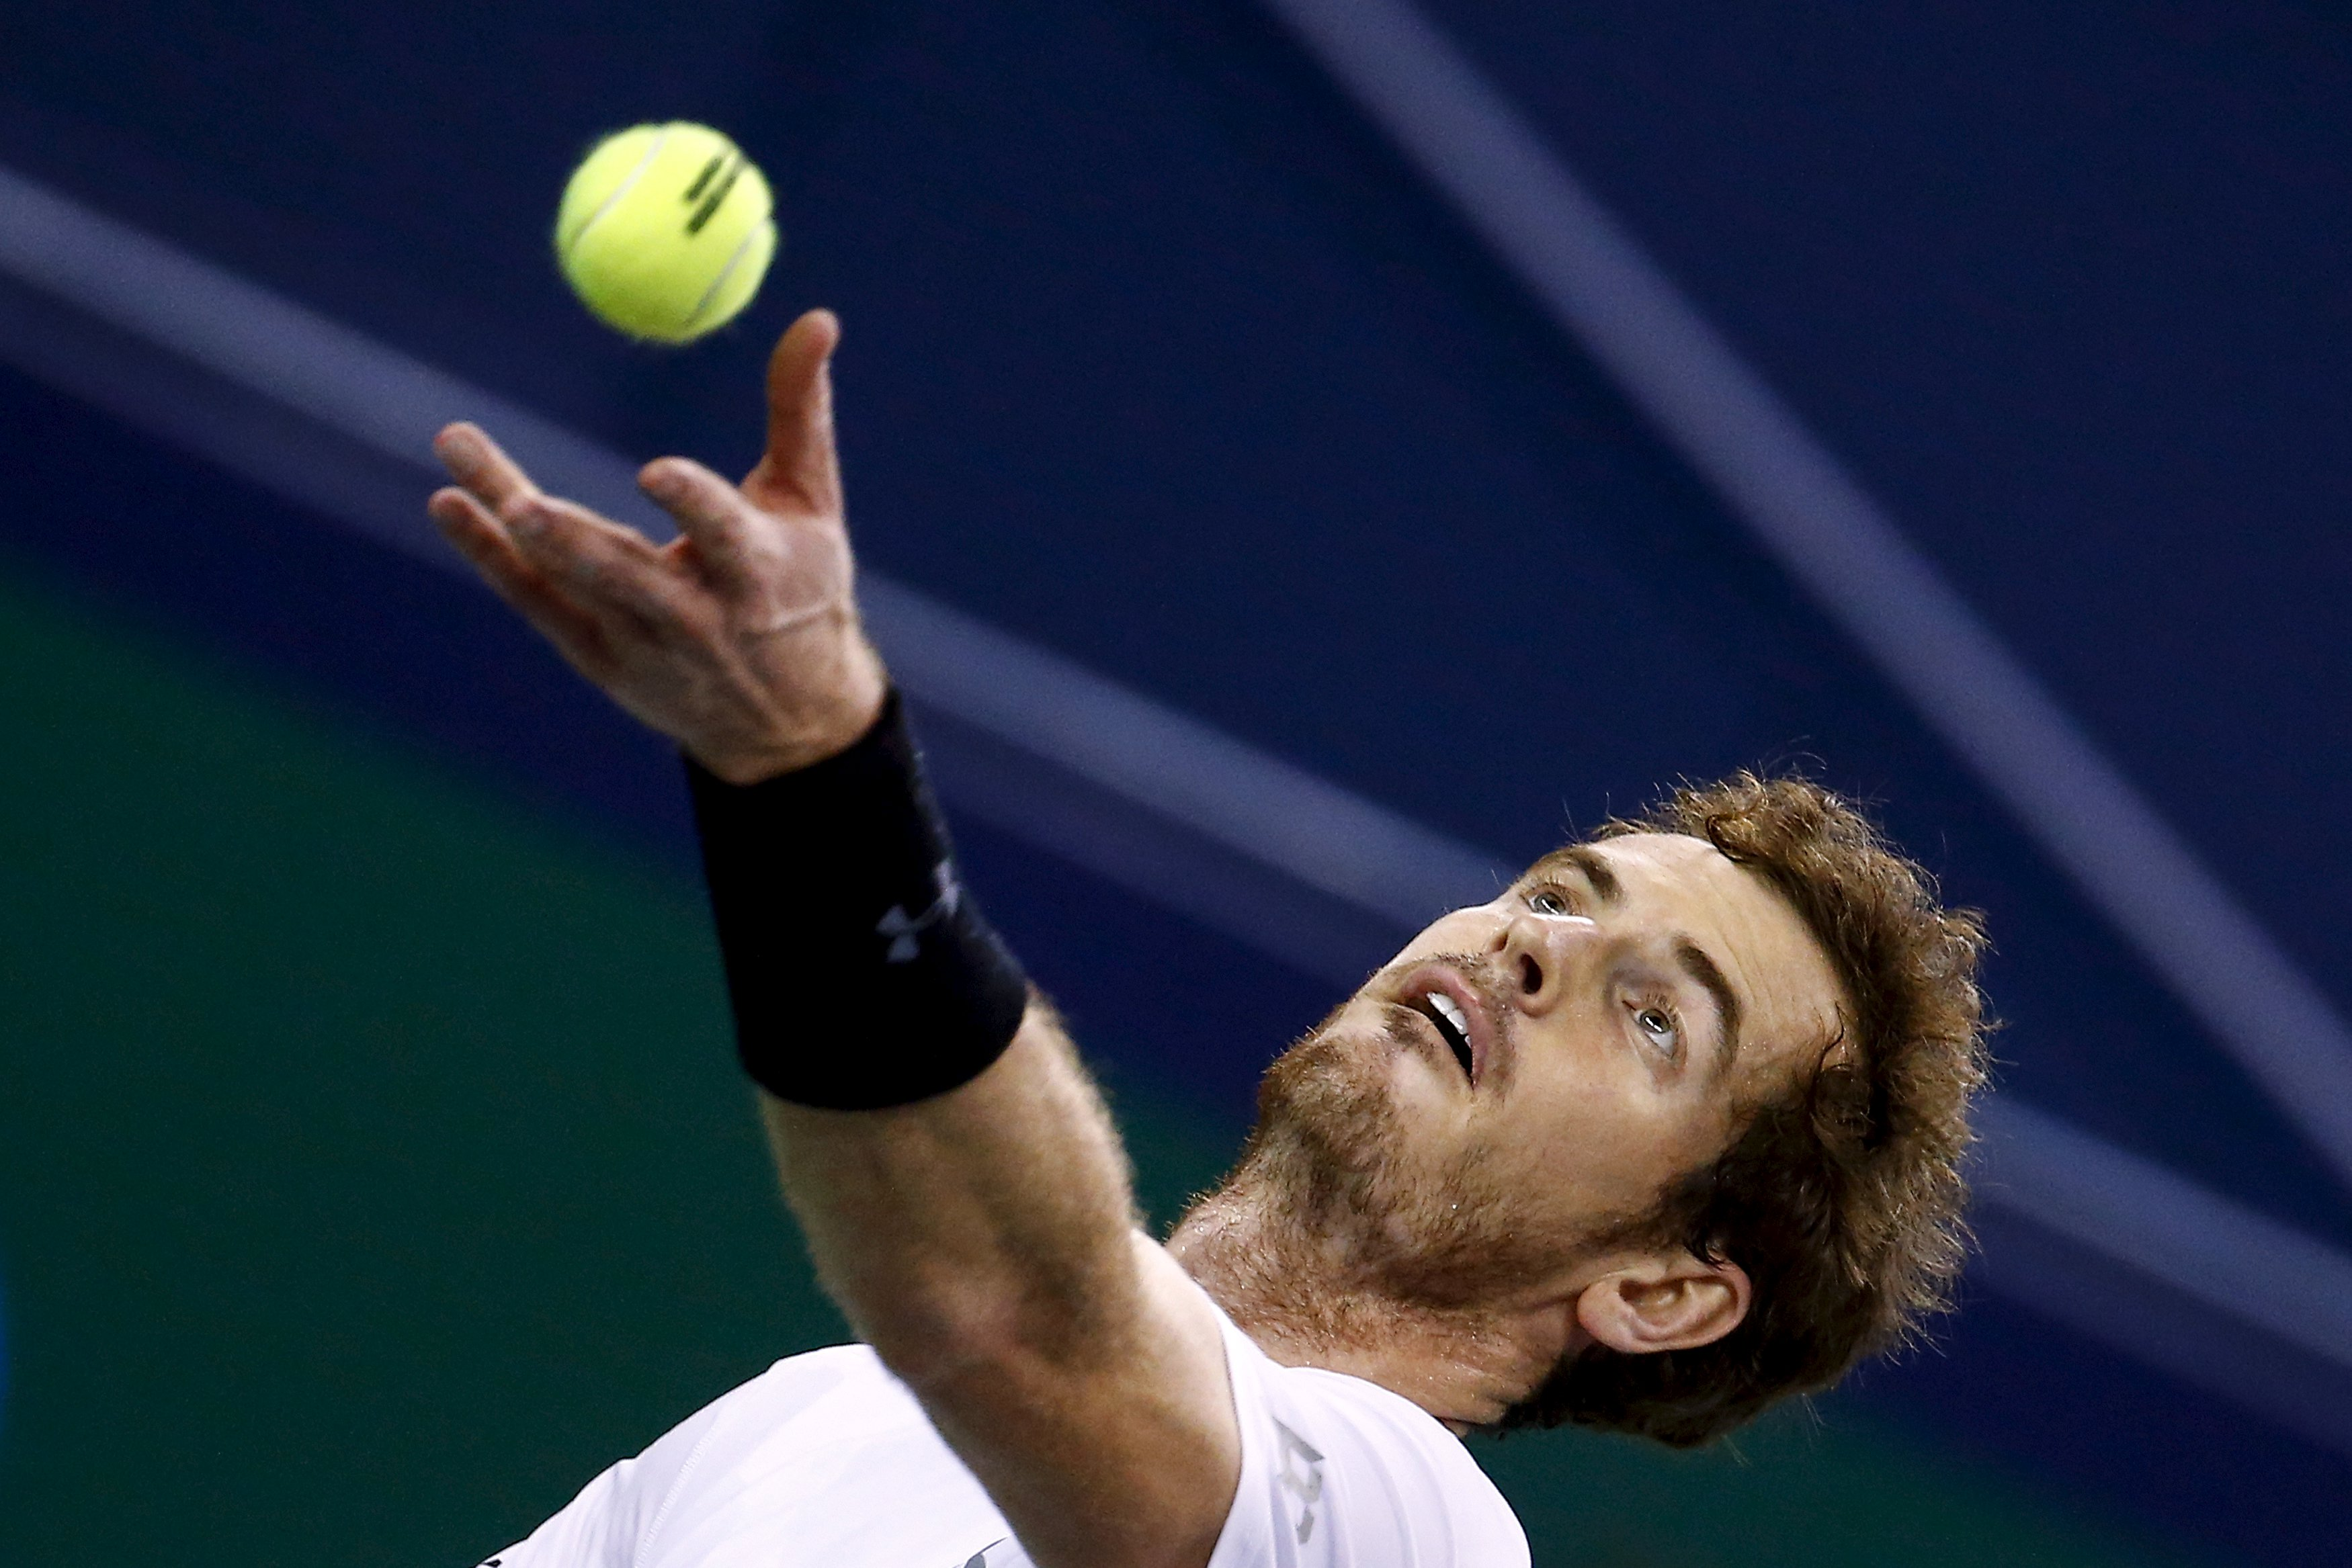 Andy Murray of Britain serves the ball as he plays against Novak Djokovic of Serbia in their men's singles semi-final match at the Shanghai Masters tennis tournament in Shanghai, China, October 17, 2015. REUTERS/Damir Sagolj